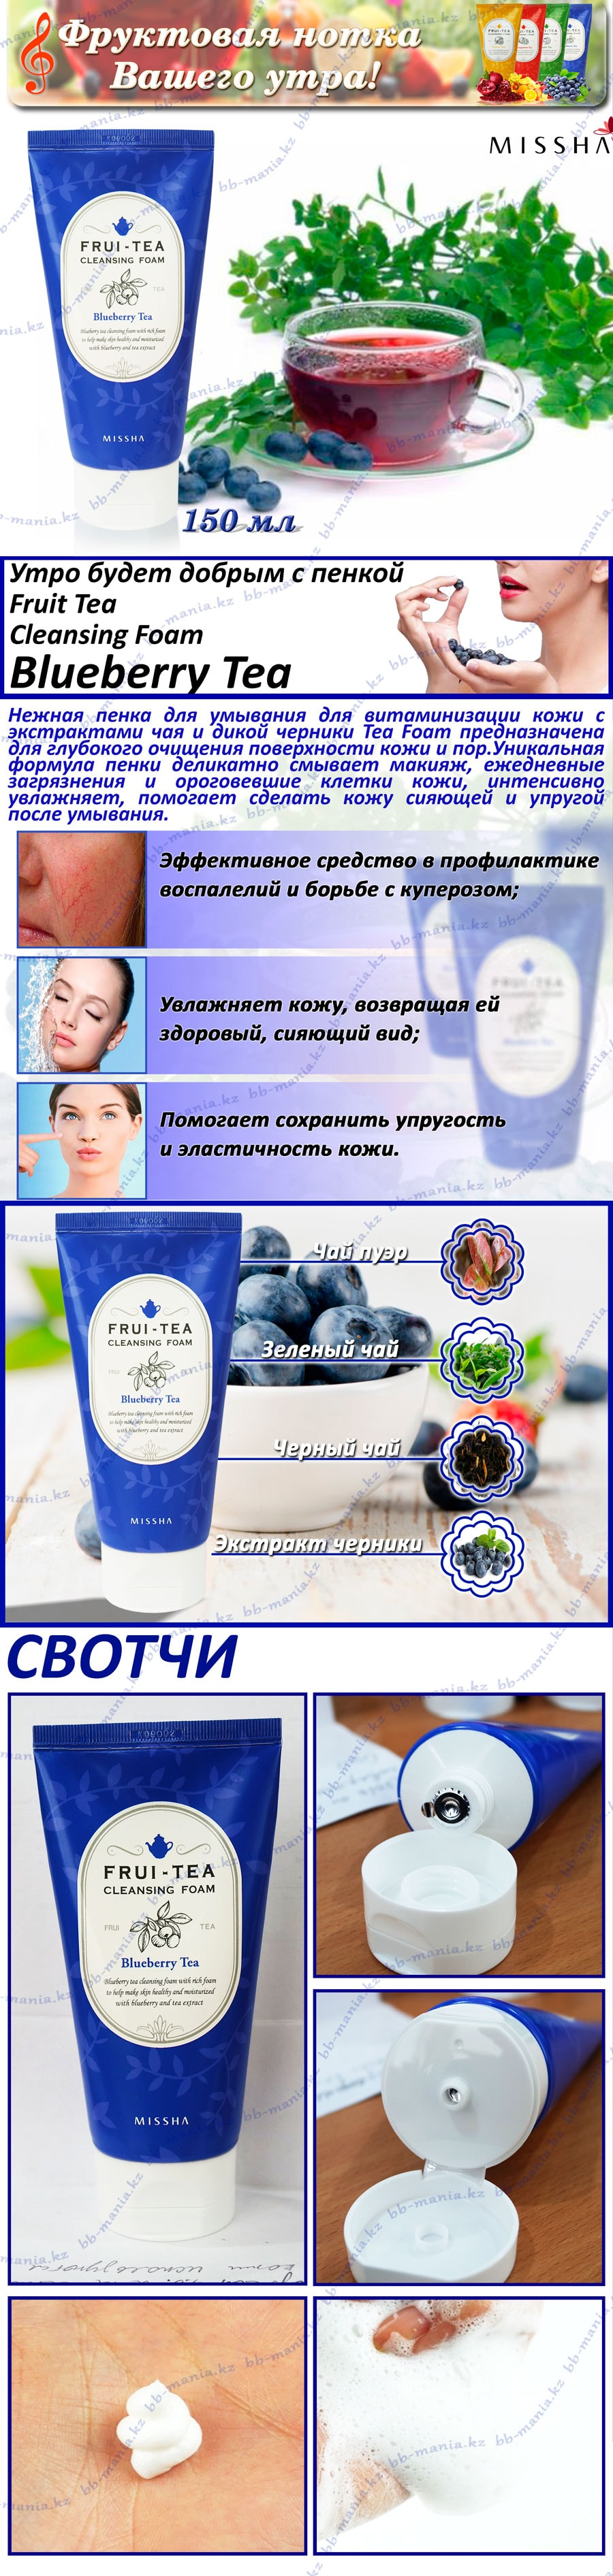 Missha-Fruit-Tea-Cleansing-Foam-—-Blueberry-Tea-min